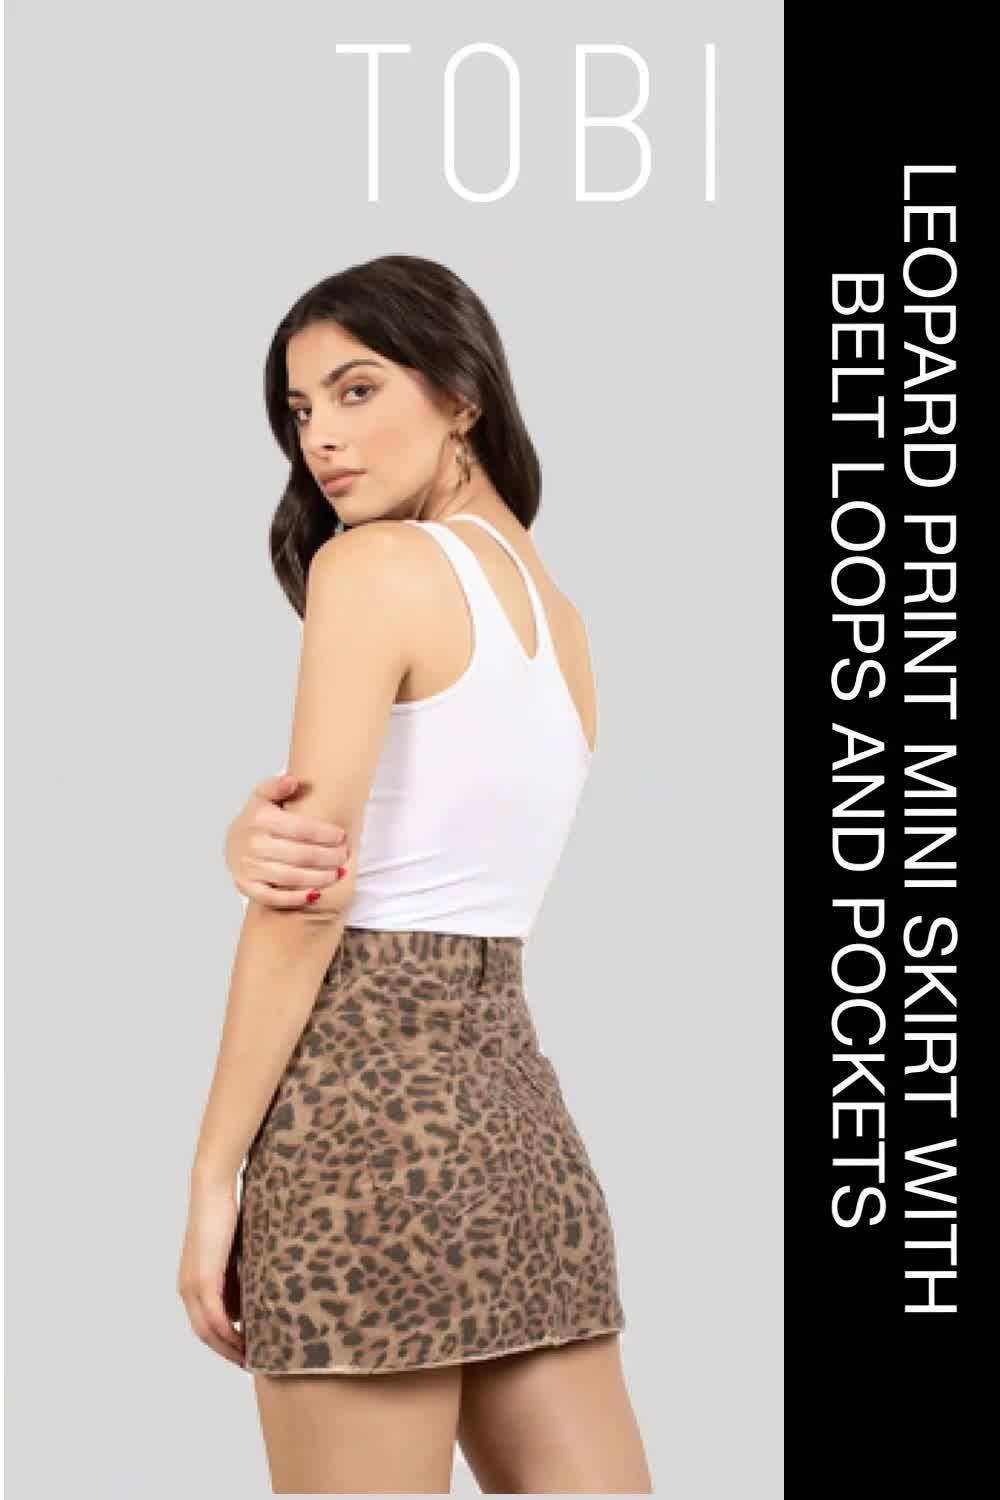 Be more stylish in this fashionable leopard print mini skirt with belt loops and pockets. Complete your full outfit with a pair of ankle boots or heels. Shop our wide selection of women's ready to wear casual weekend skirts, bottoms, and trendsetting night out fashion clothing outfits in the latest styles from TOBI online. #shoptobi #womensfashion #skirts #skirtoutfits #bottomsforwomen #casualoutfits #fashiontrends #fashionoutfits